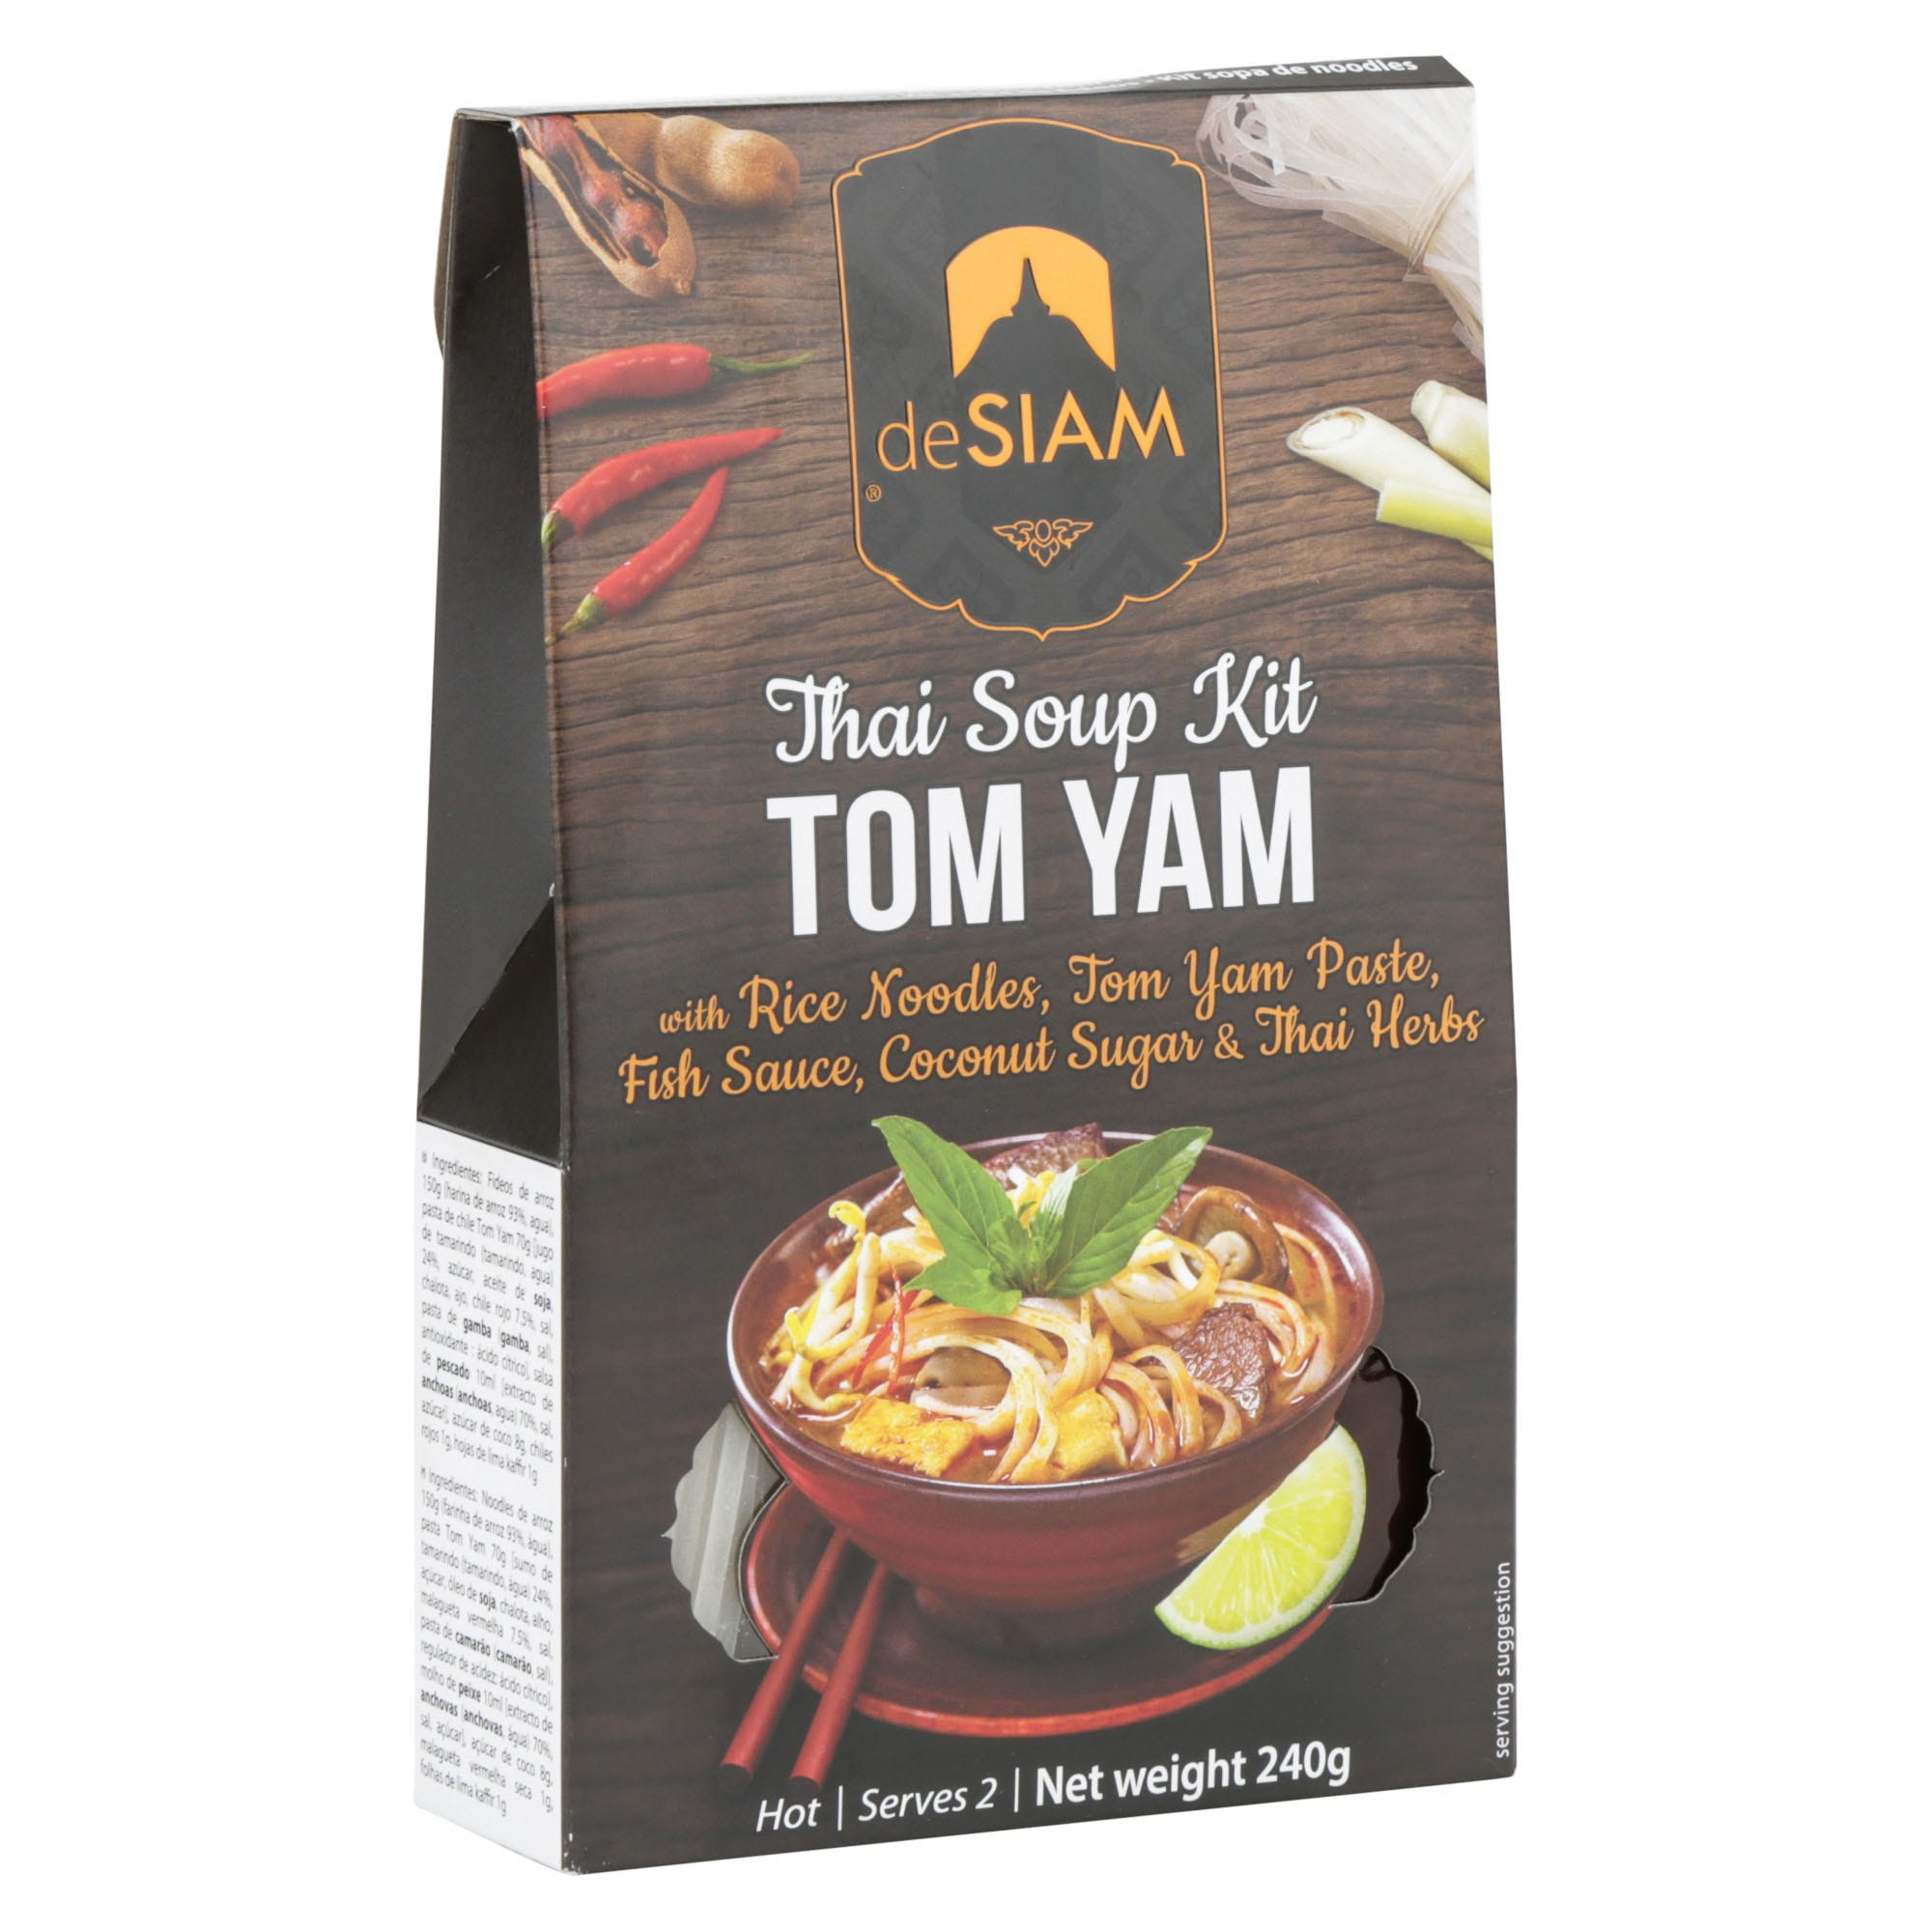 Tom Yam Noodle Soup Kit